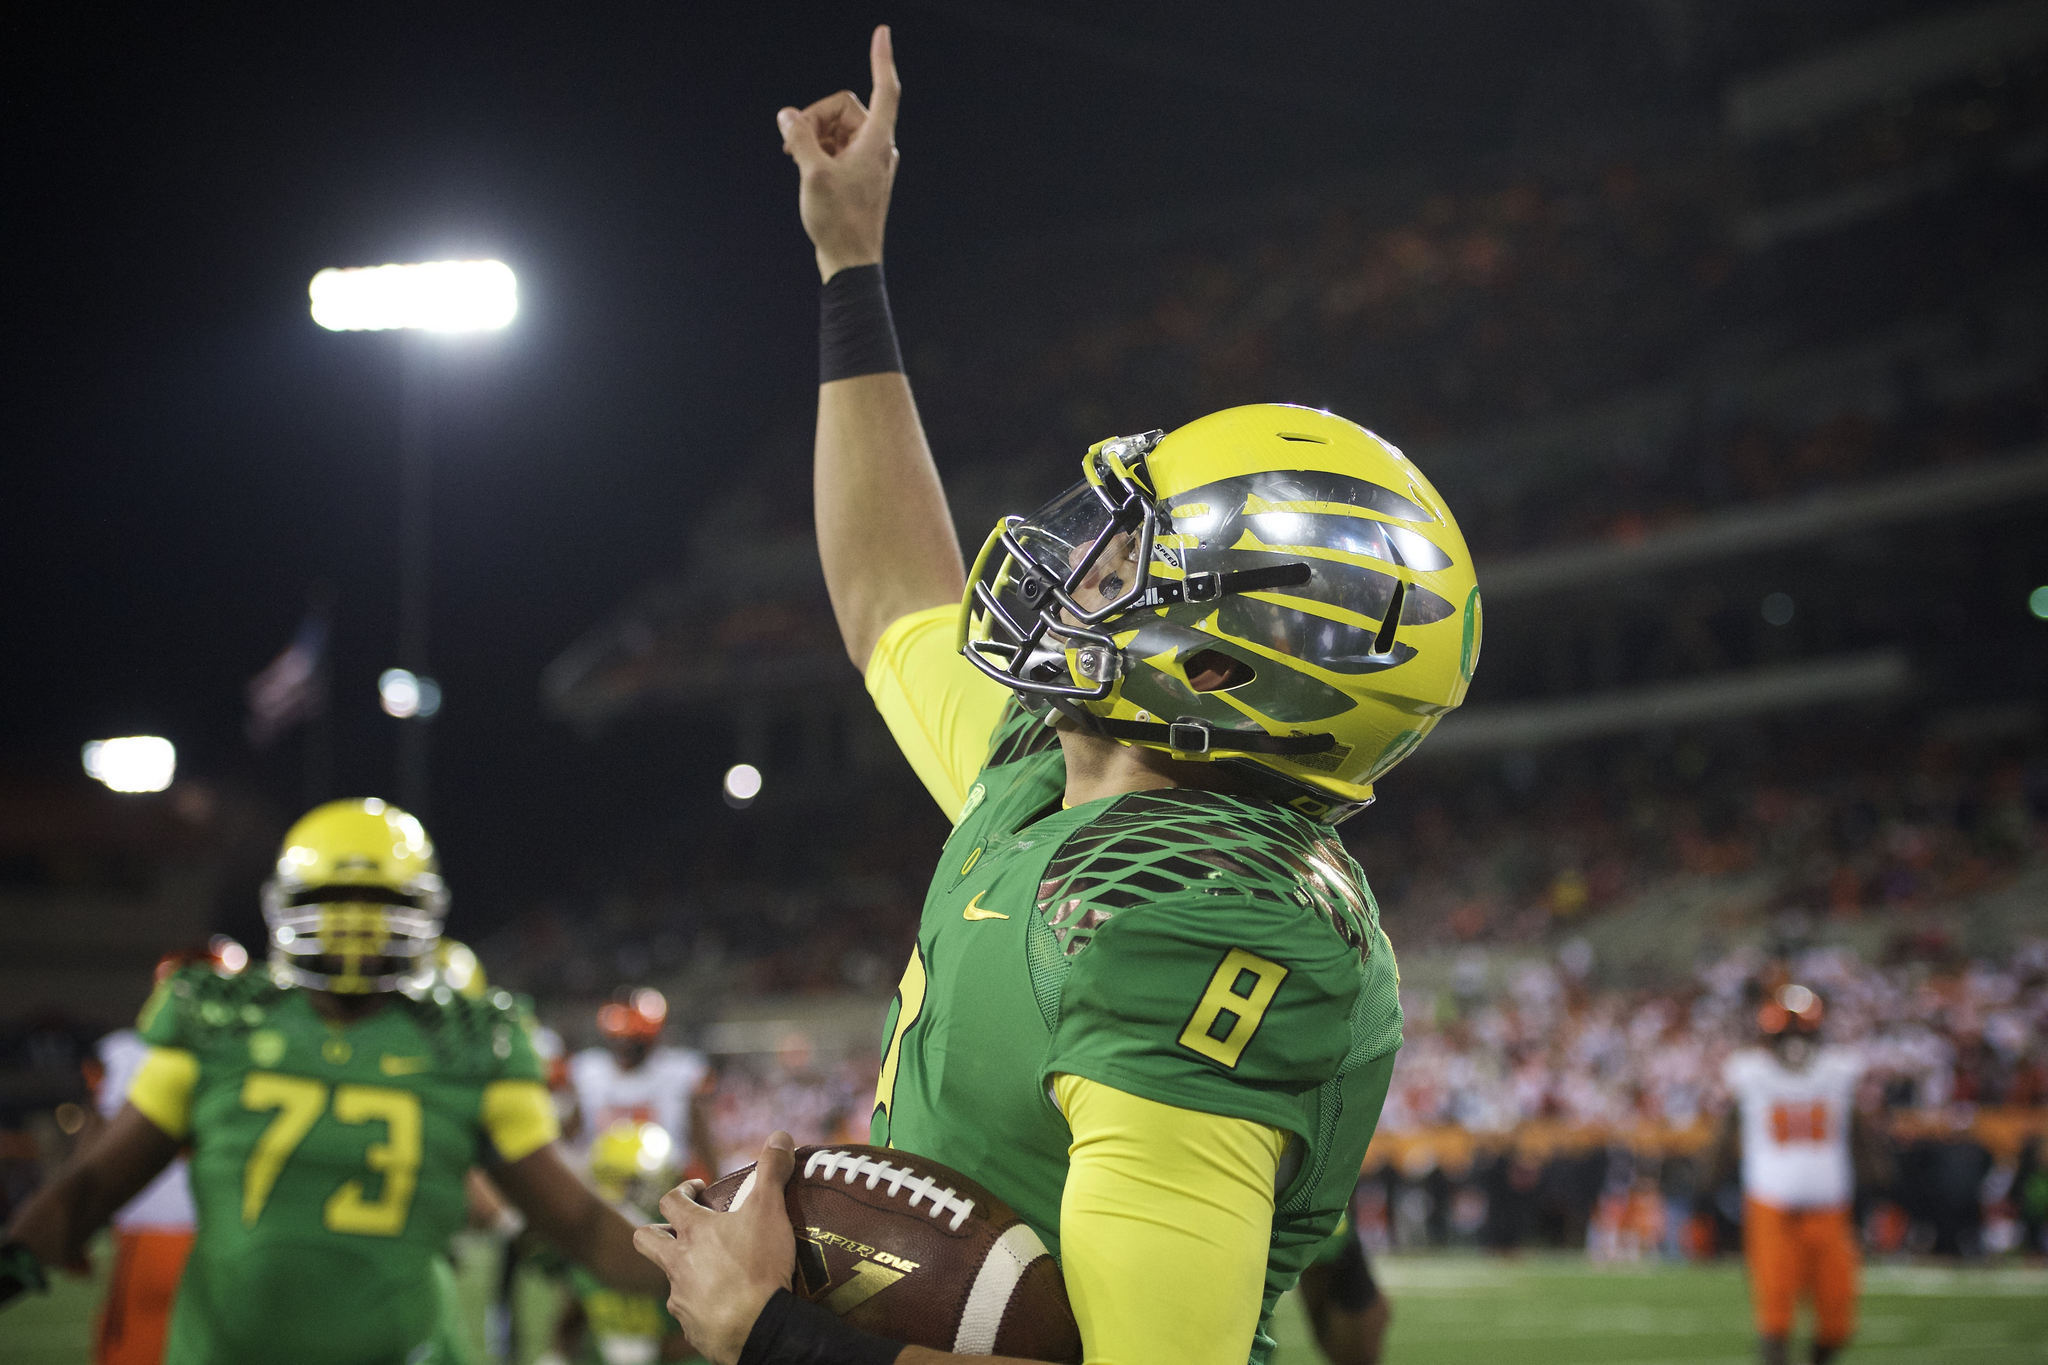 National title pick: Why Marcus Mariota will lead Oregon to crown